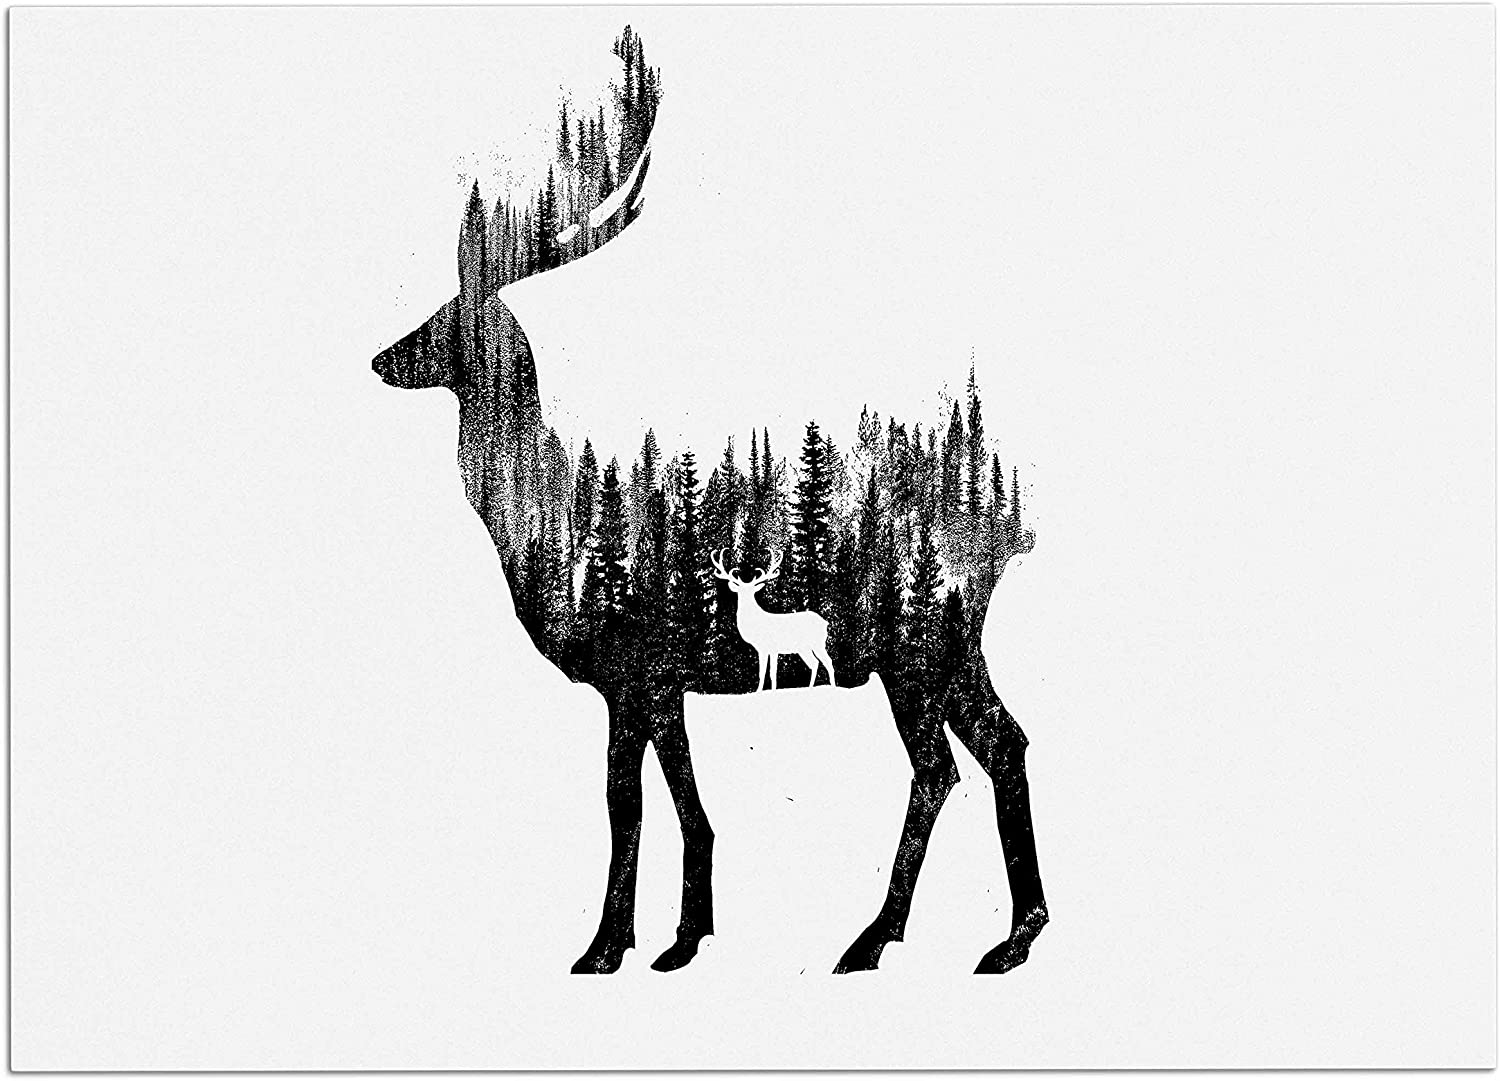 KESS InHouse RT1161ADM02 BarmalisiRTB The Deer Black White Digital Dog Place Mat, 24  x 15